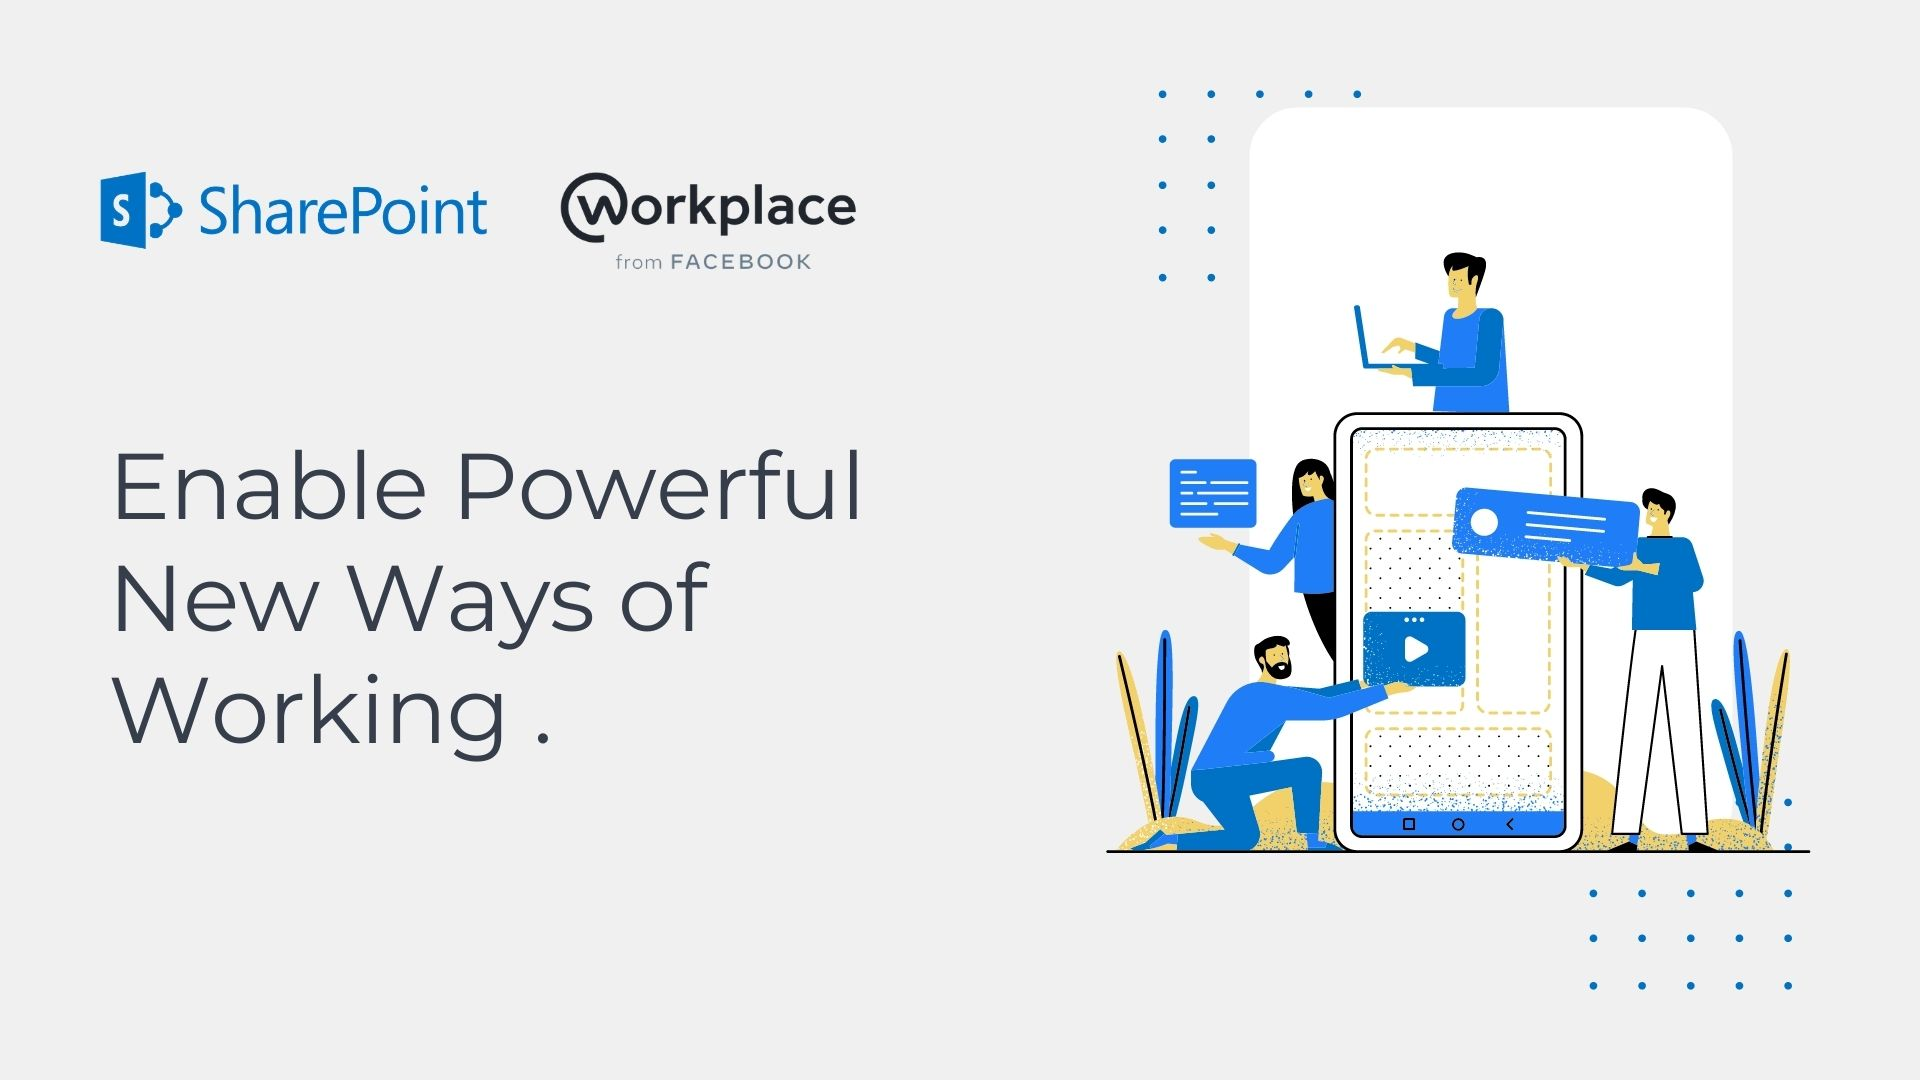 Sharepoint and workplace from facebook